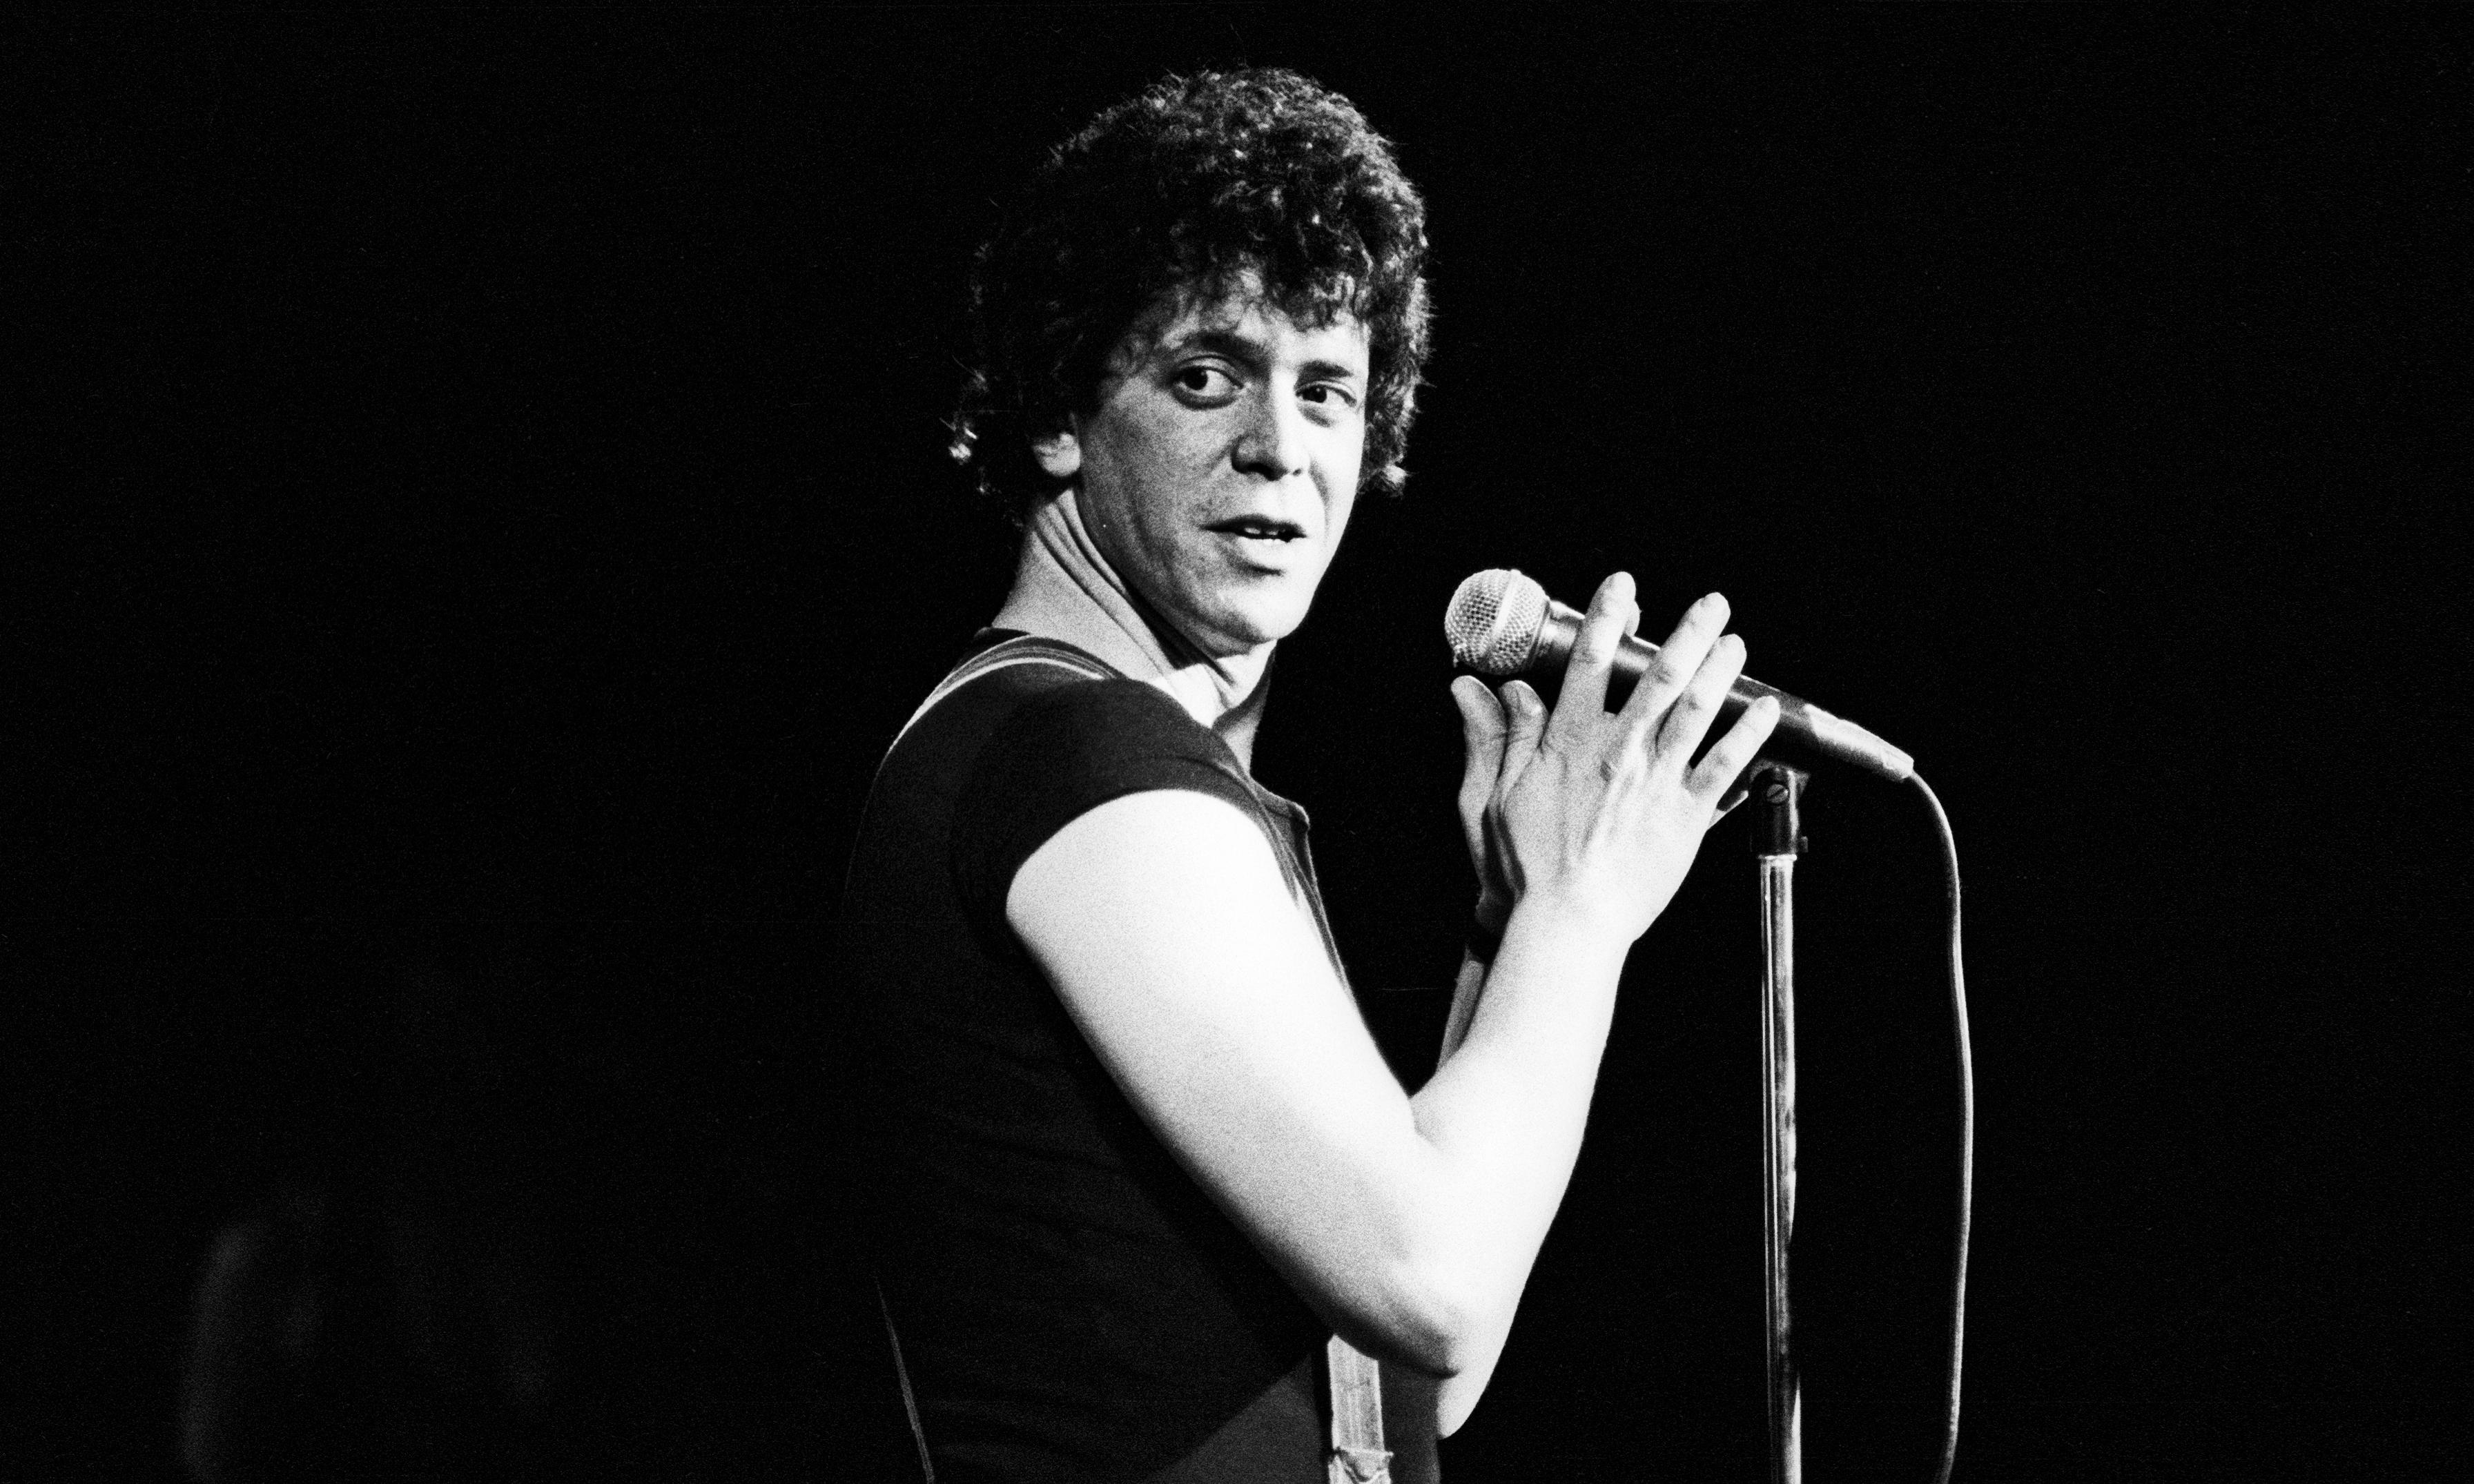 Lou Reed's friends dismiss claim that Walk on the Wild Side is transphobic